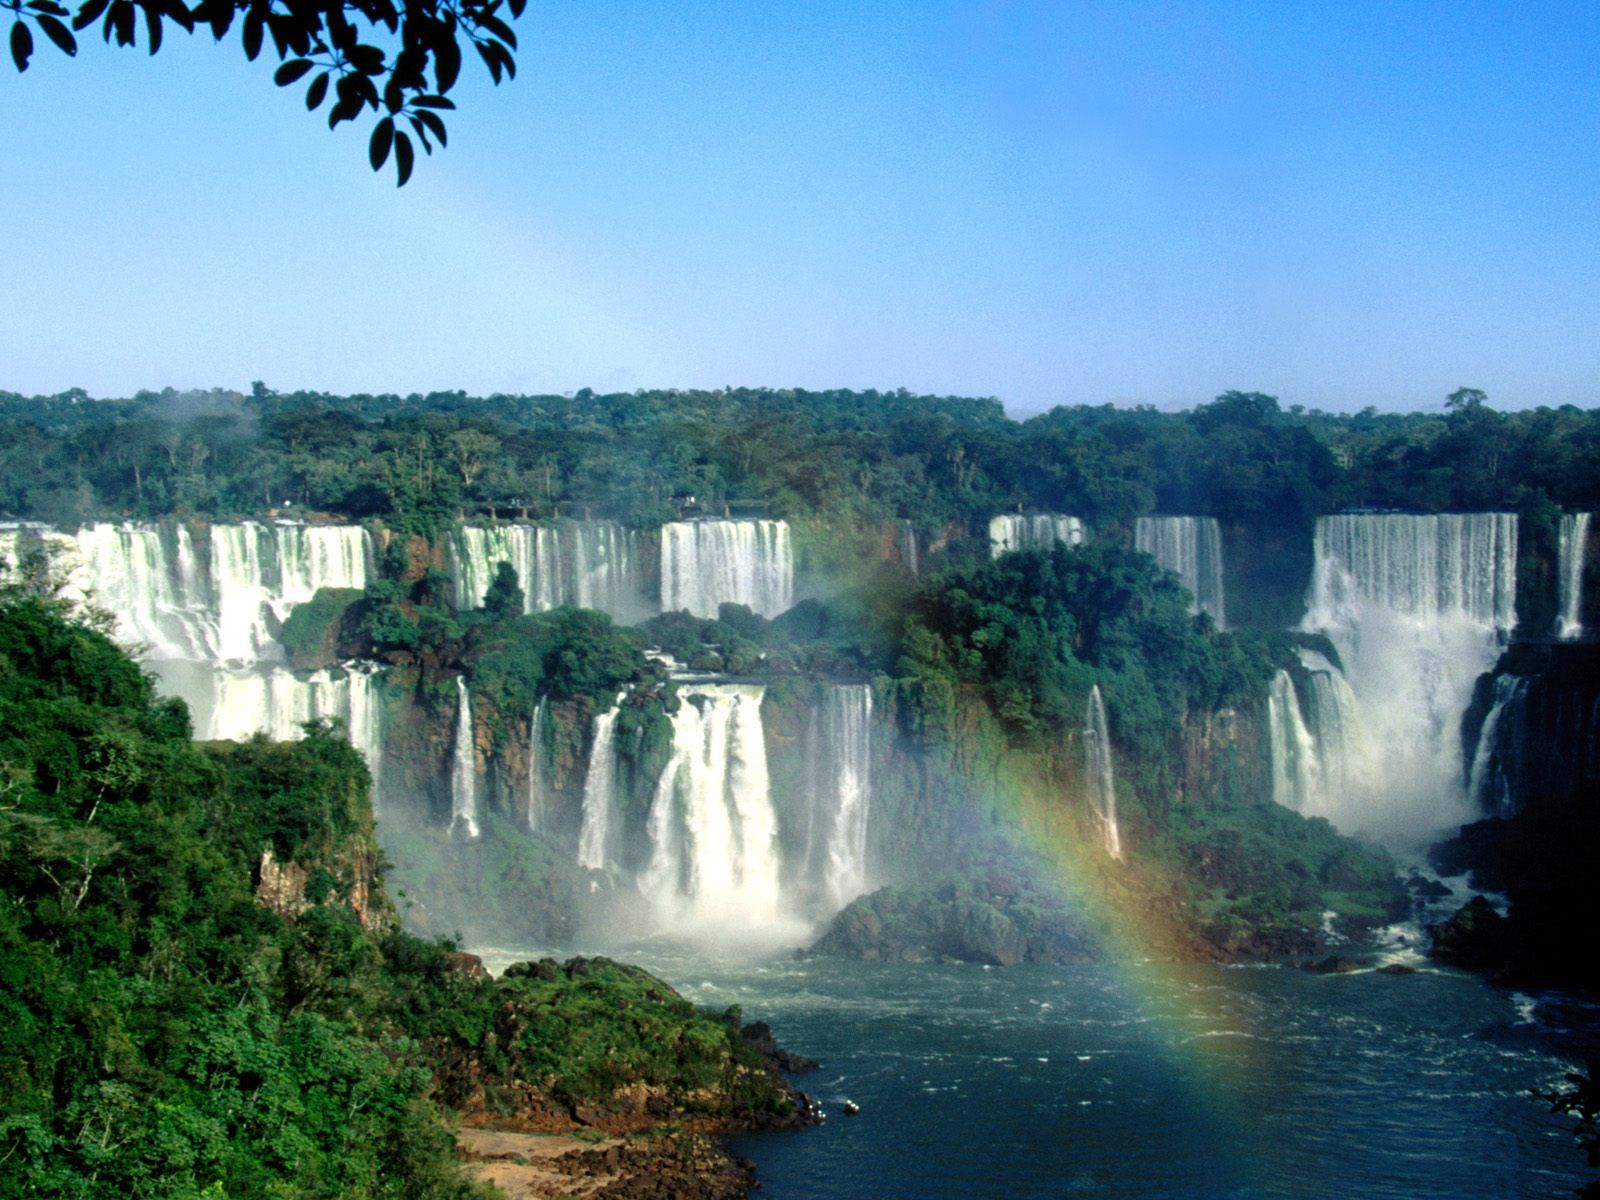 The Iguazu Falls is the mother of all waterfalls. Another border forming falls, this time between Argentina and Brazil, this natural beauty is a symbol of power and boasts a series of impressive waterfalls each one having the height of between 64m to 82m.